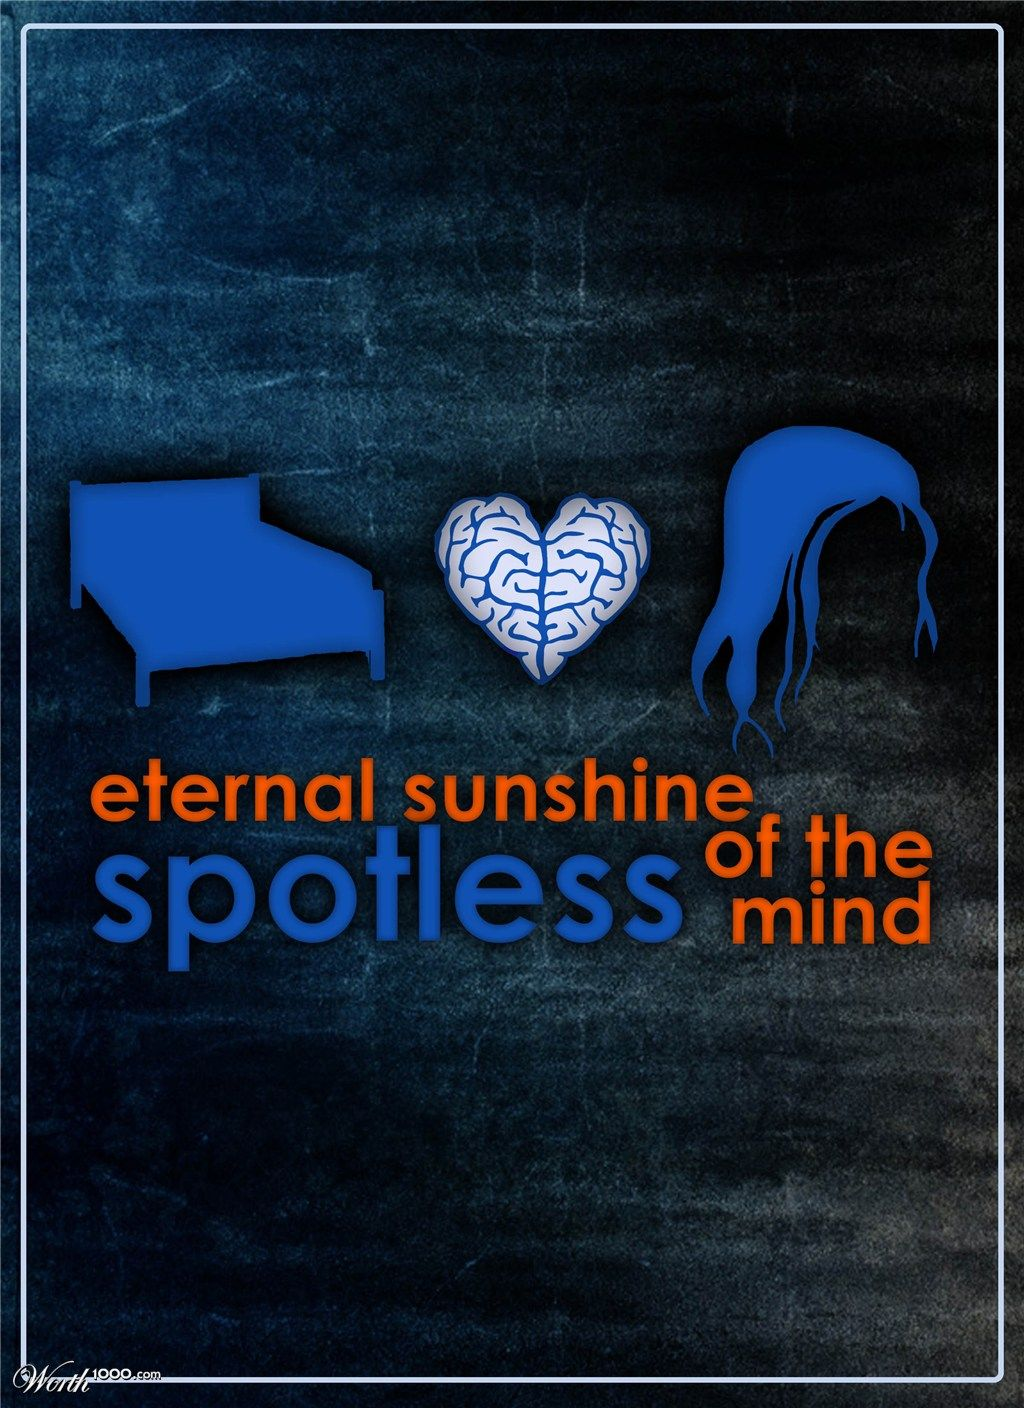 Eternal Sunshine of the Spotless Mind - Worth1000 Contests